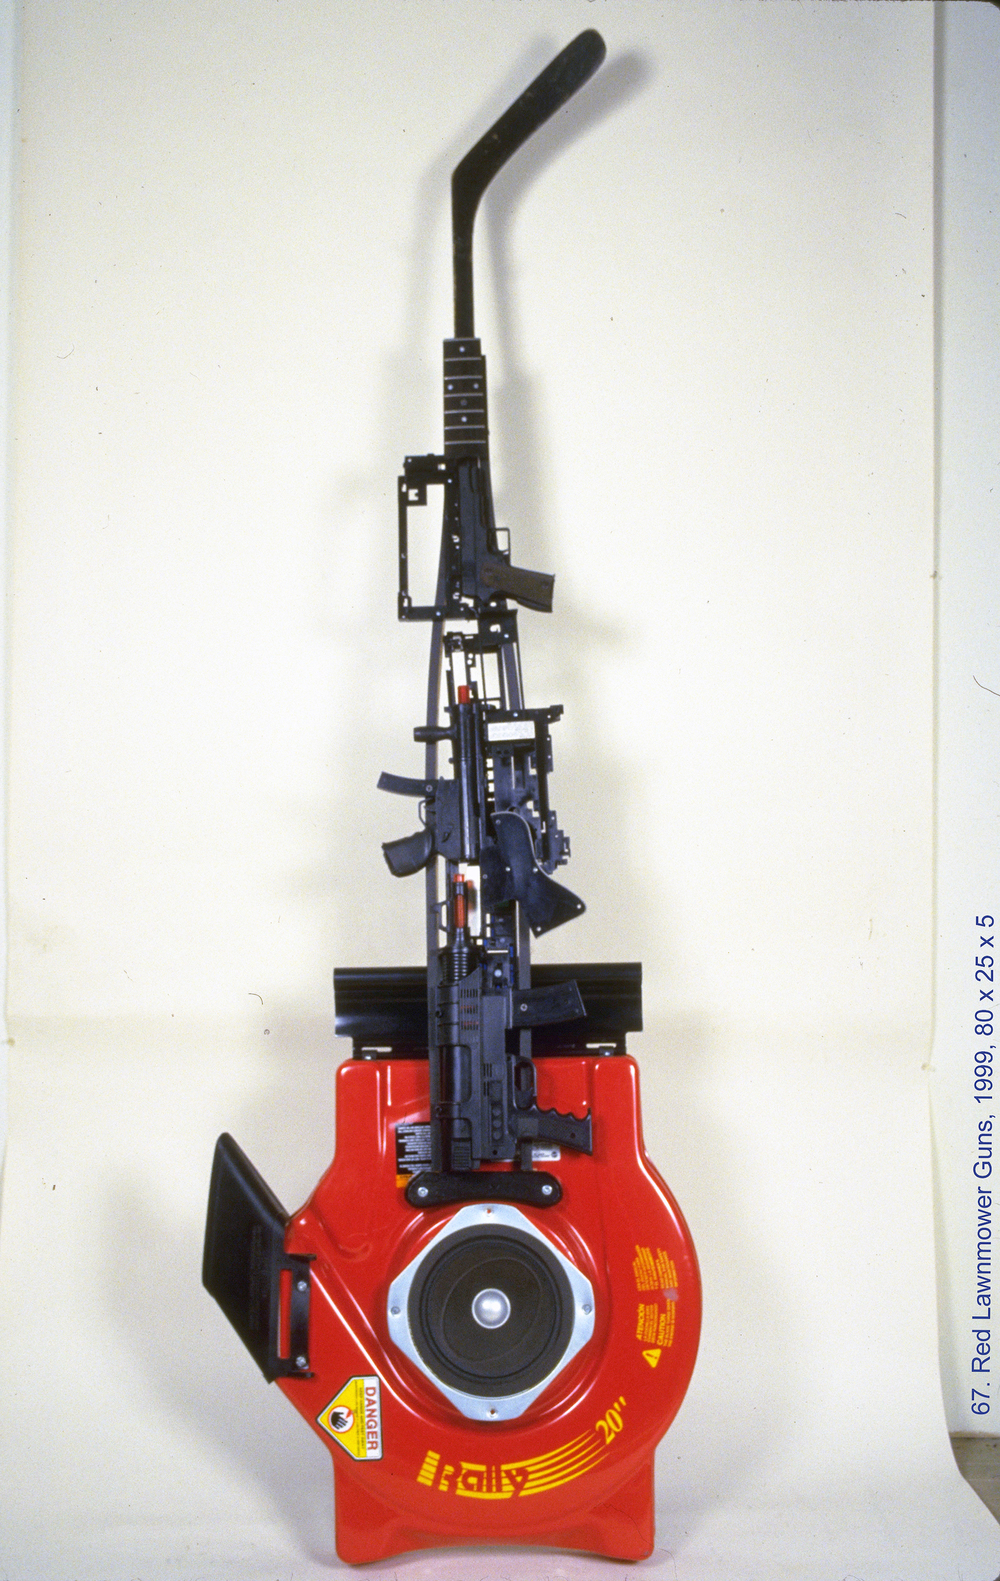 67 Red Lawnmower Guns wt.jpg